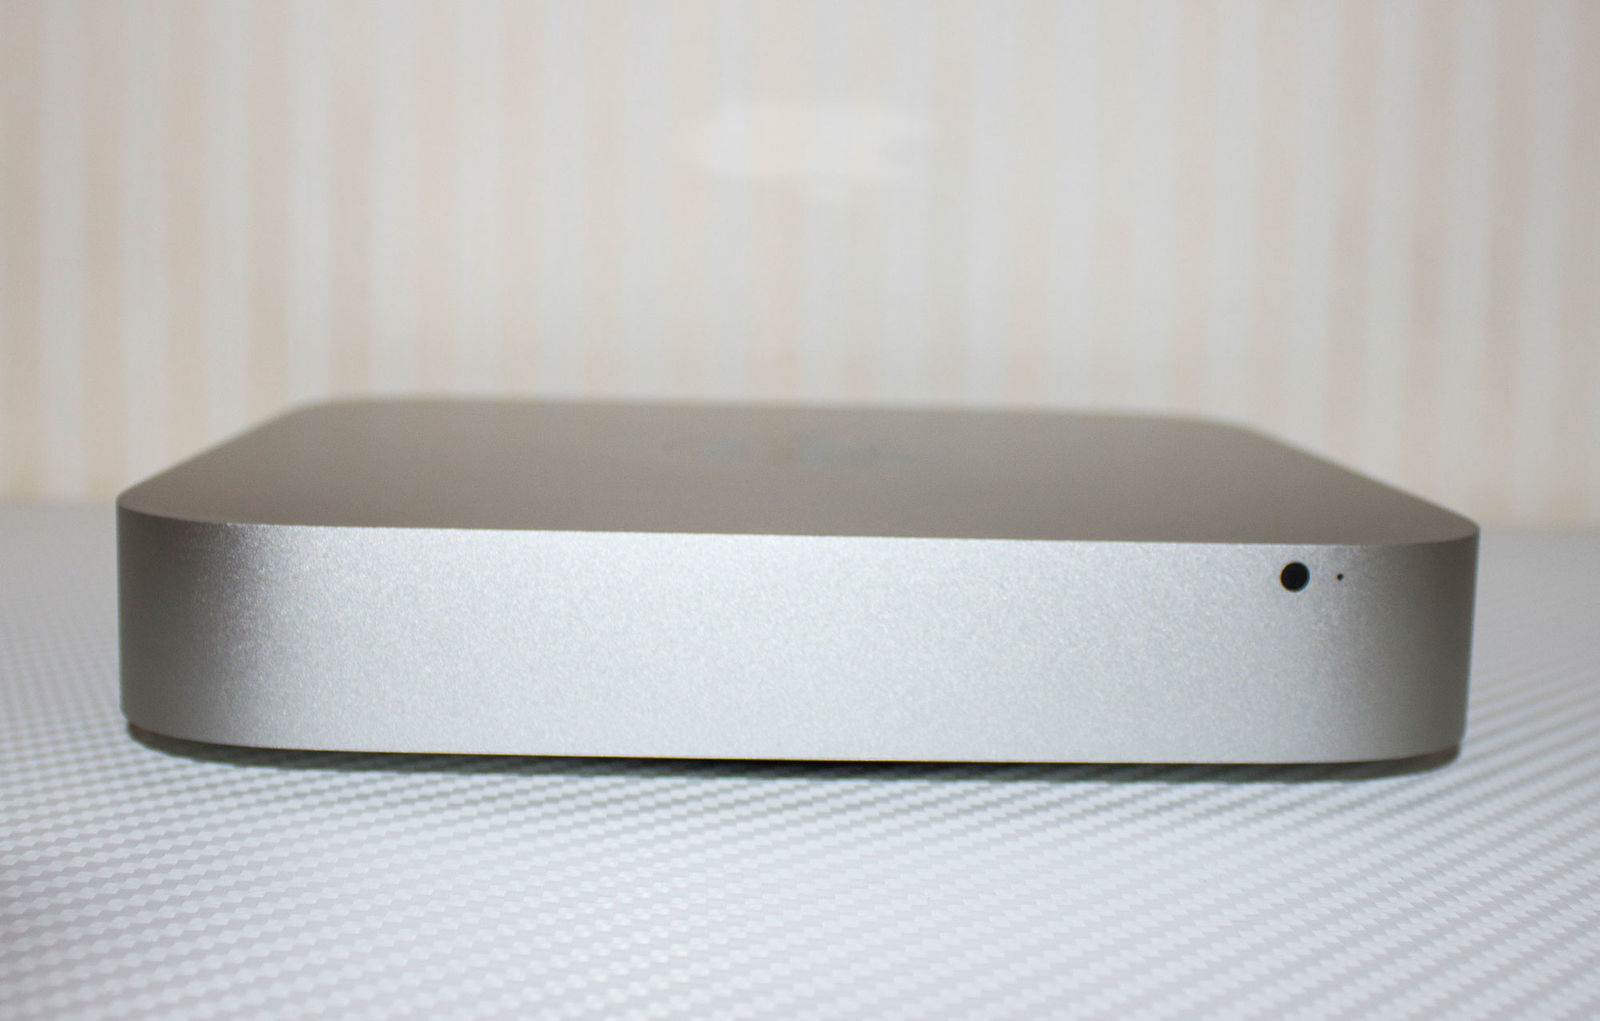 Mac mini Server 2.0-2.9 GHz Intel Quad-Core i7, 4-ядерный п-р (MC936)